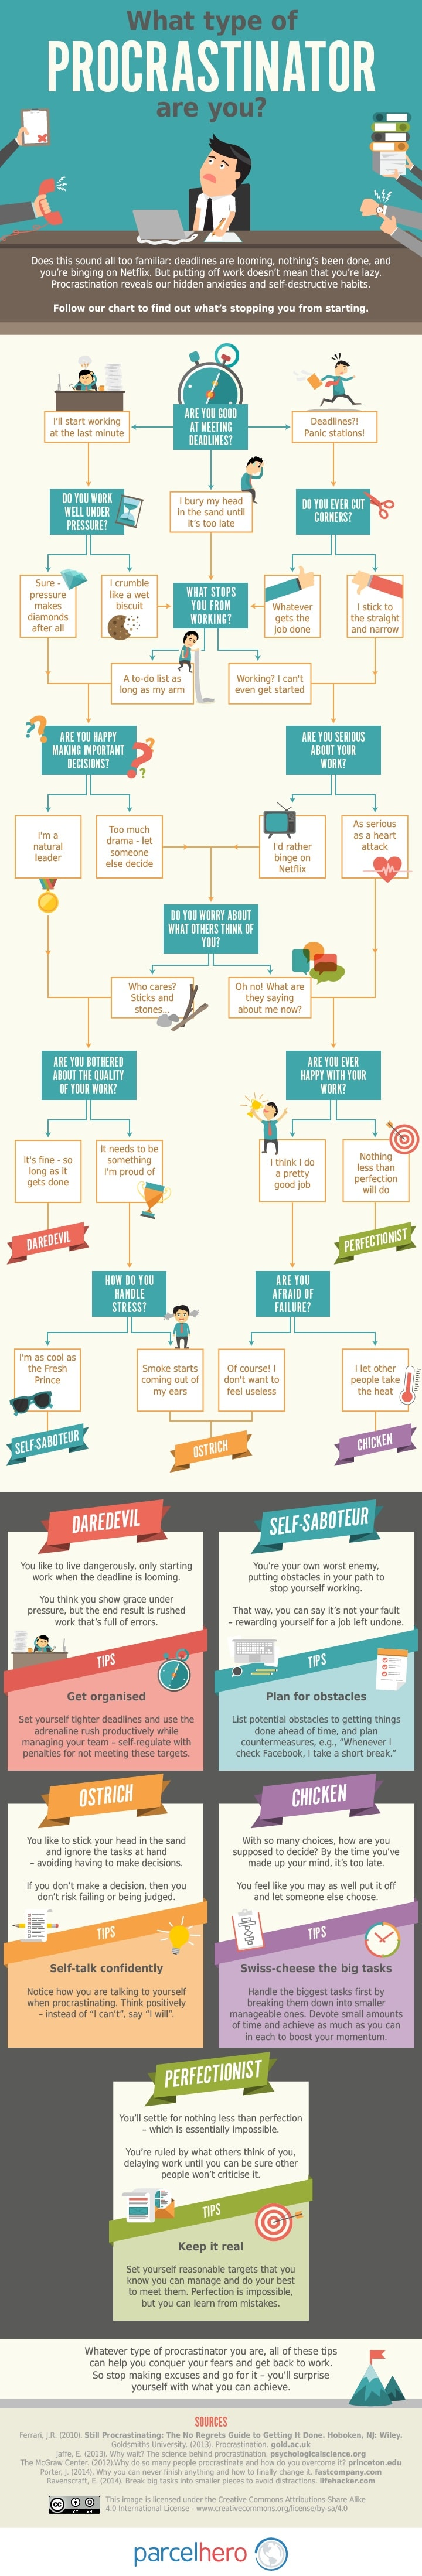 What Kind Of Procrastinator Are You? [Infographic]